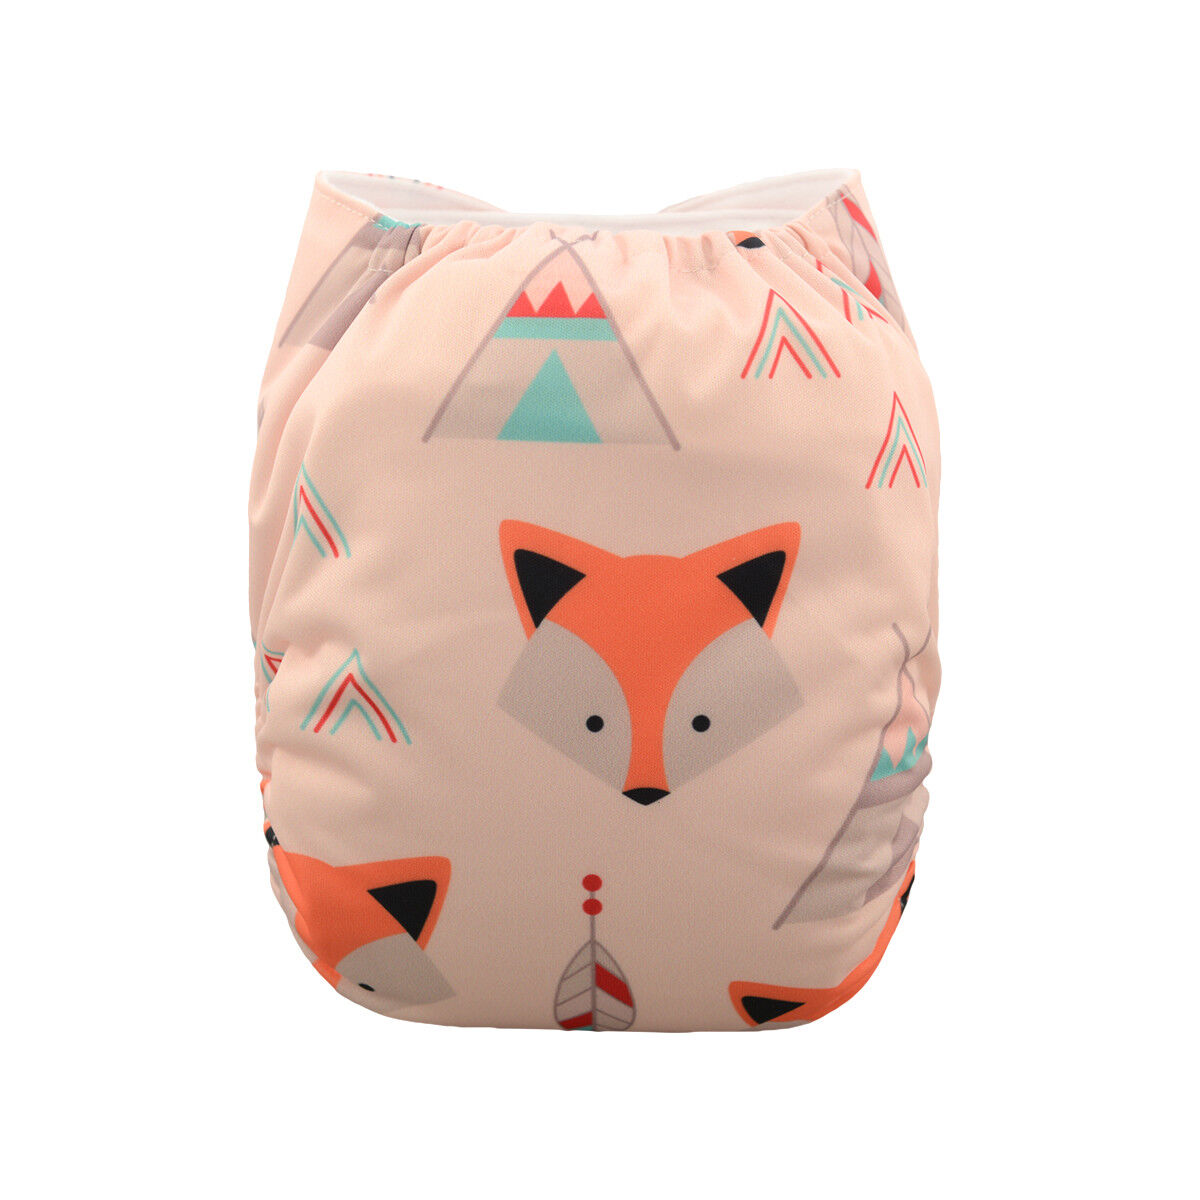 ALVABABY Reusable Baby Cloth Diapers OneSize Washable Pocket Nappies With Insert YD45